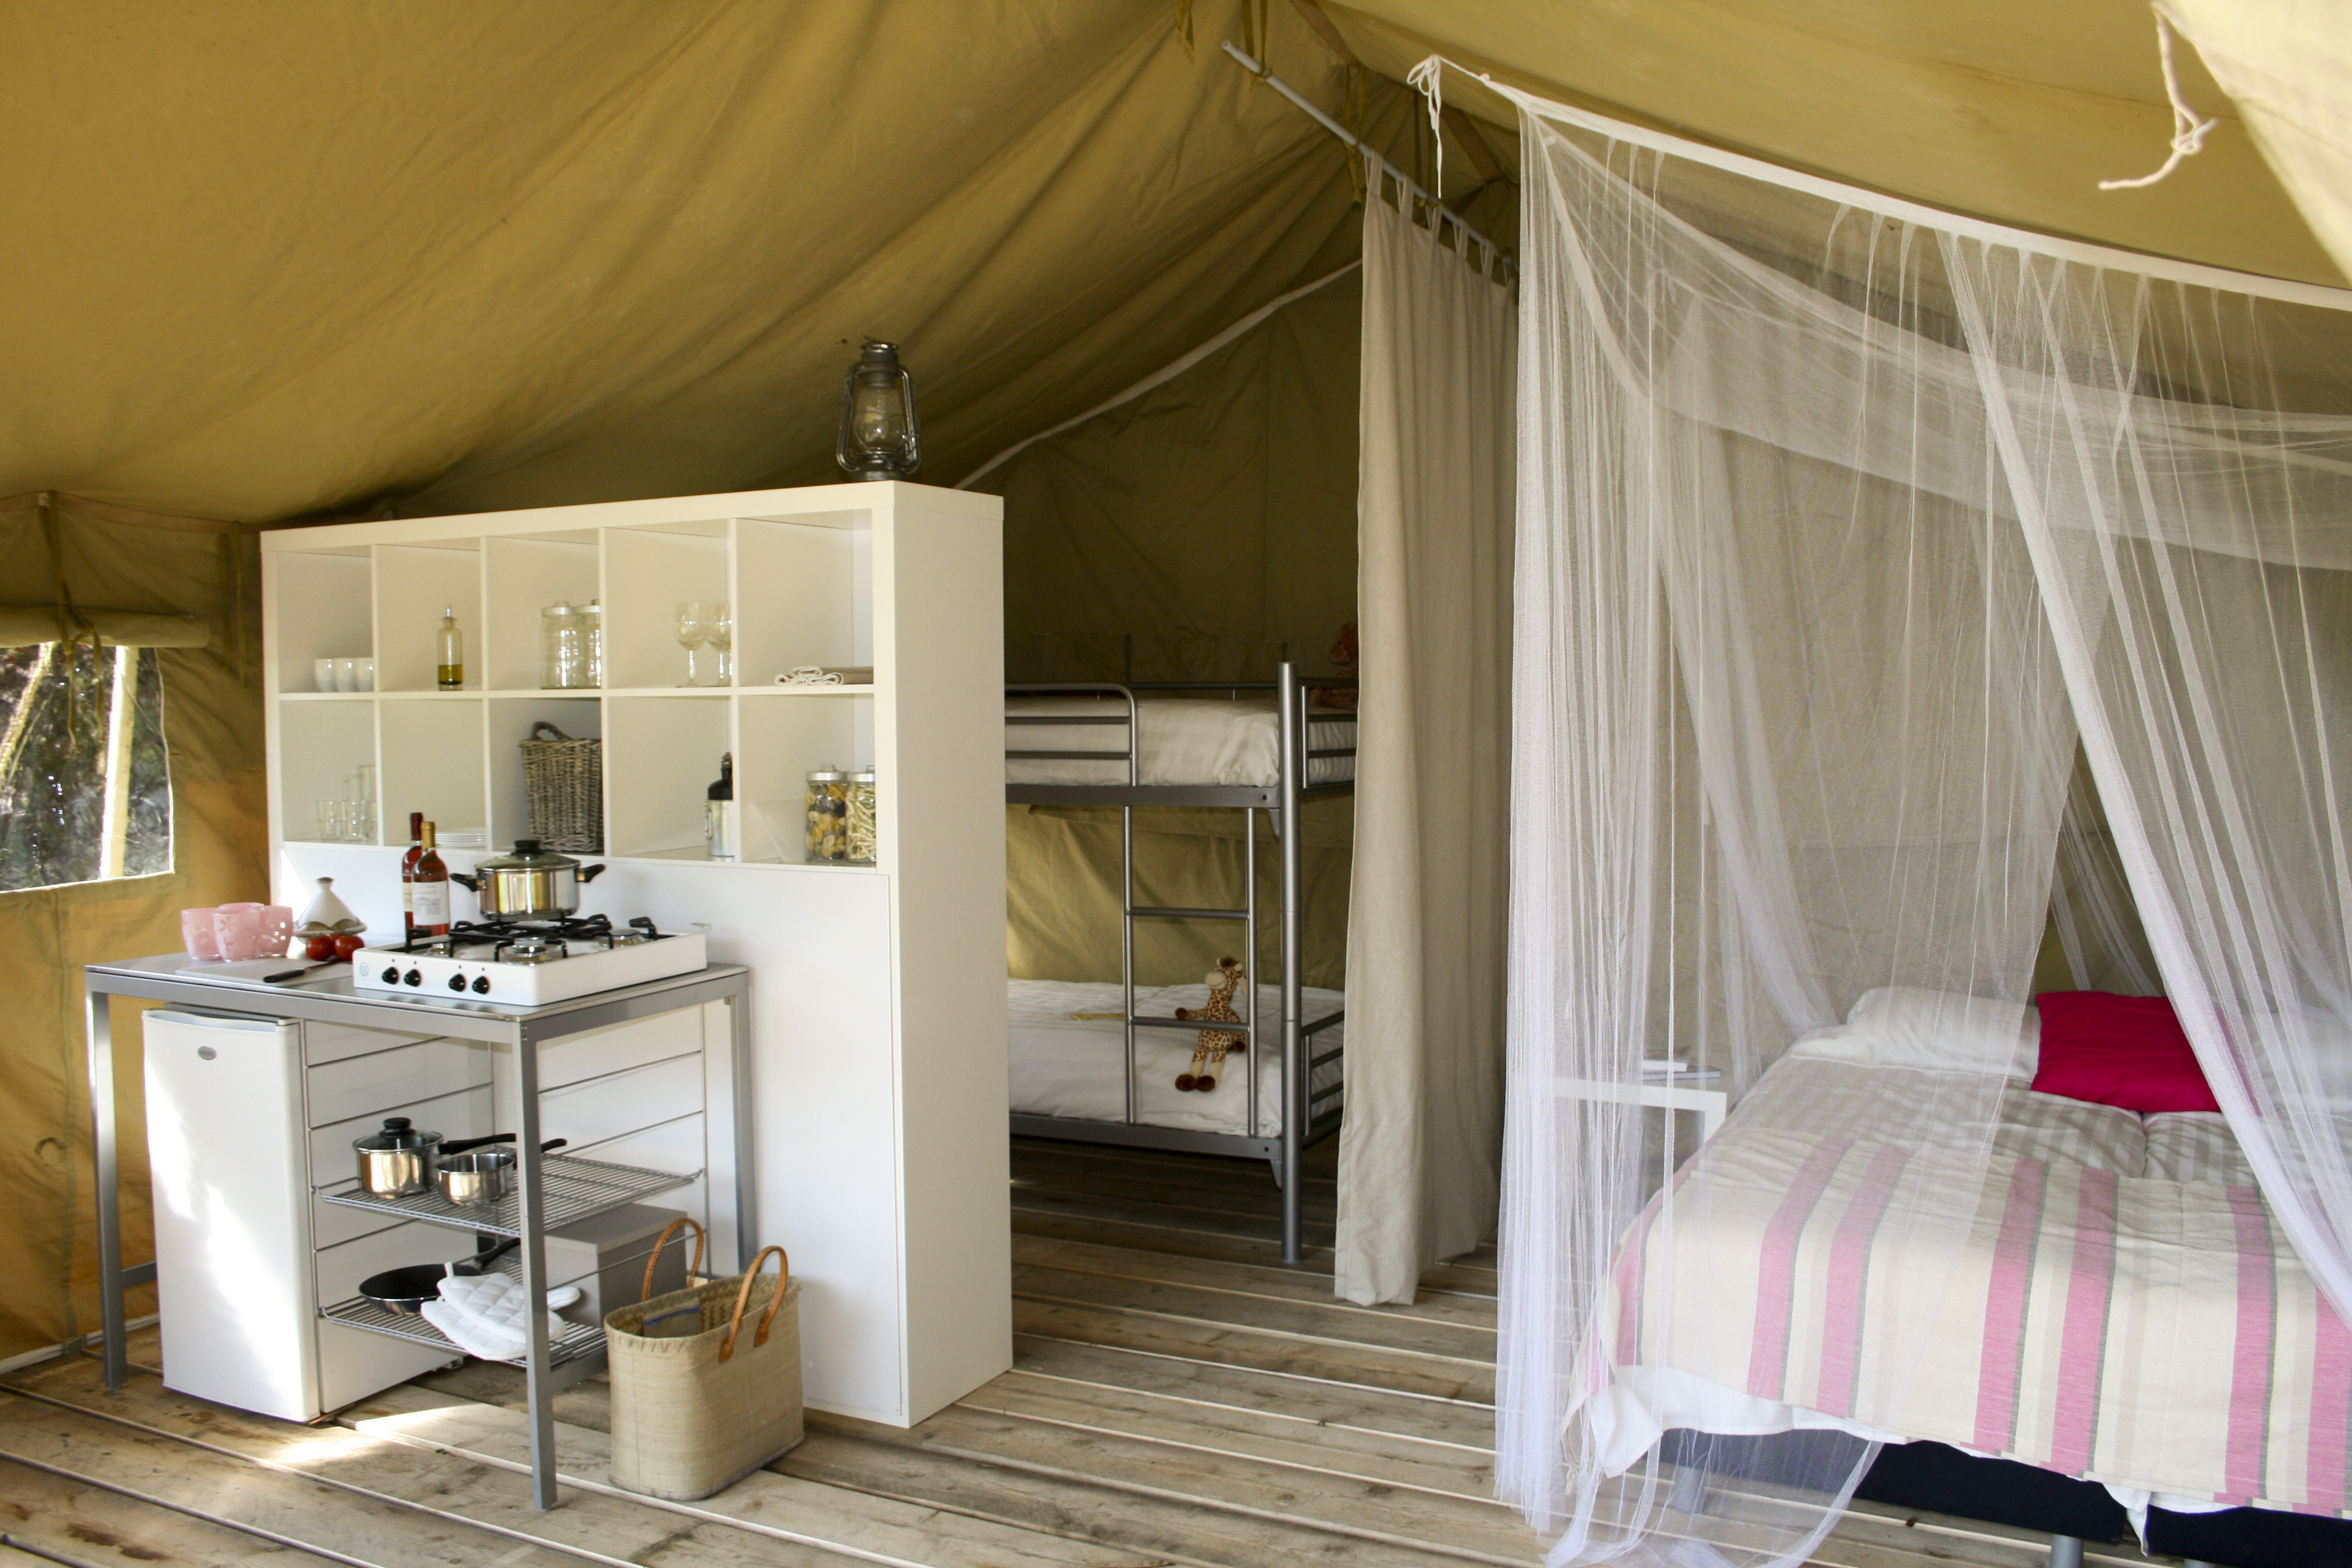 Himmelbett selbst gemacht  Natur pur: Glamping am Blanksee | glampinginfo